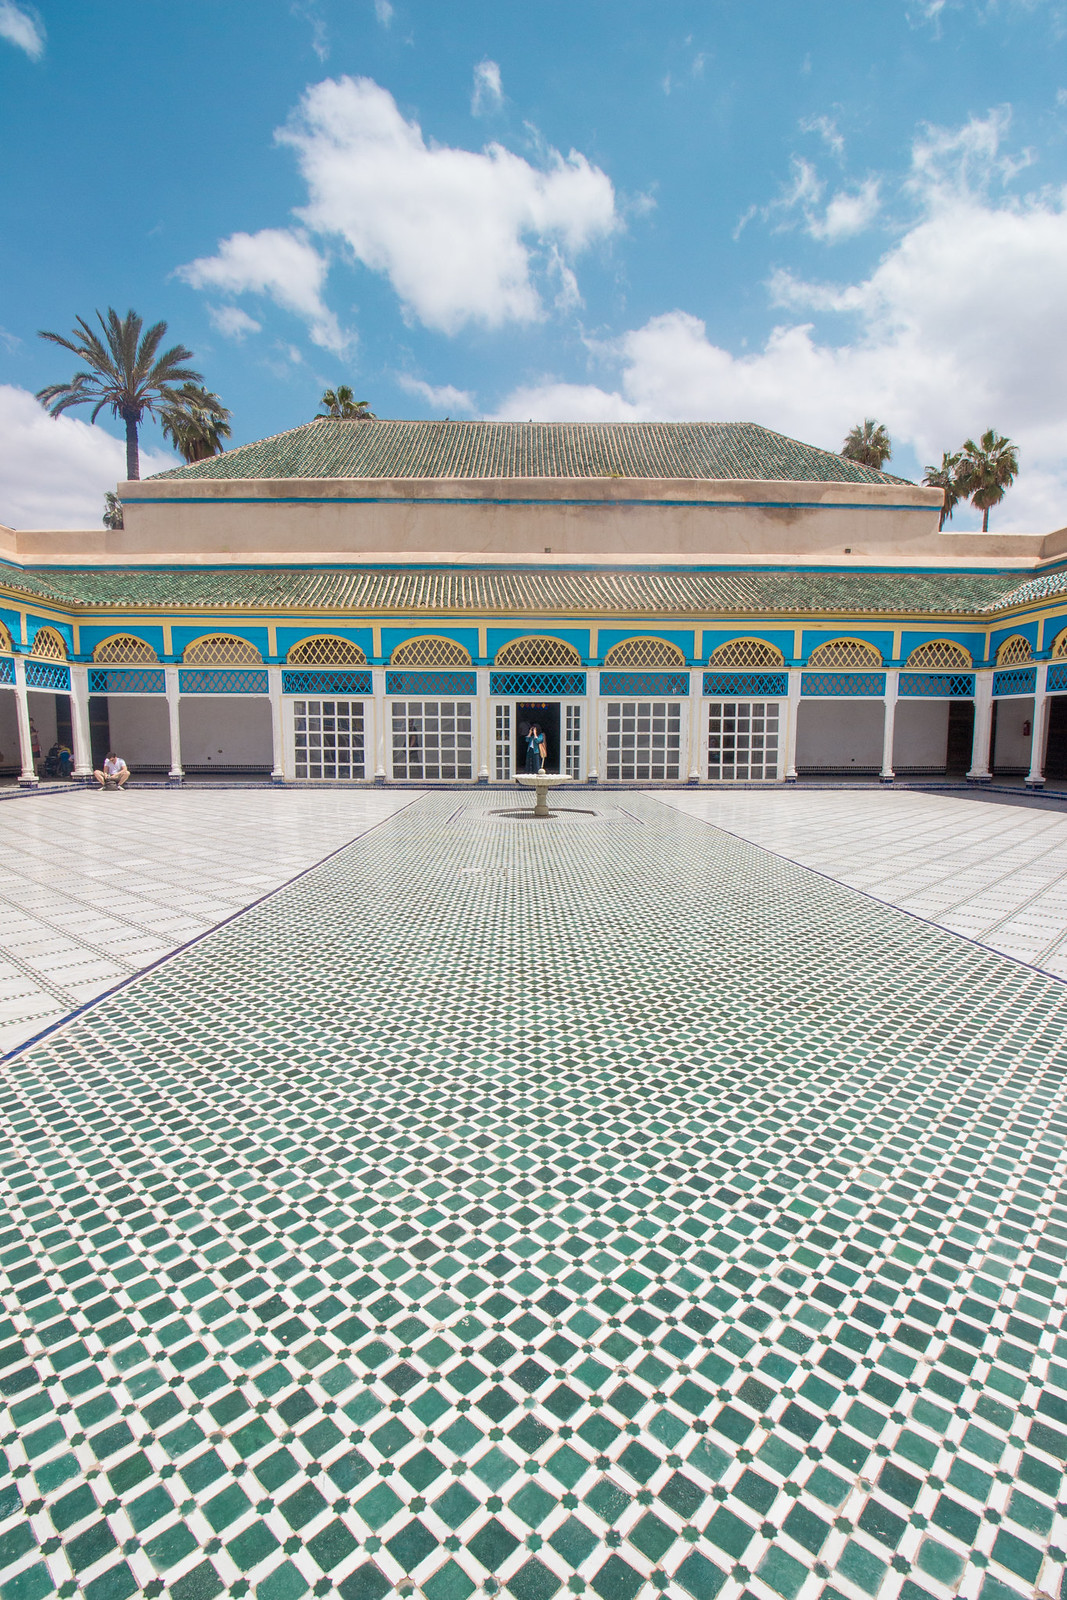 Bahia Palace, in Marrakech - definitely not as quiet as it looks